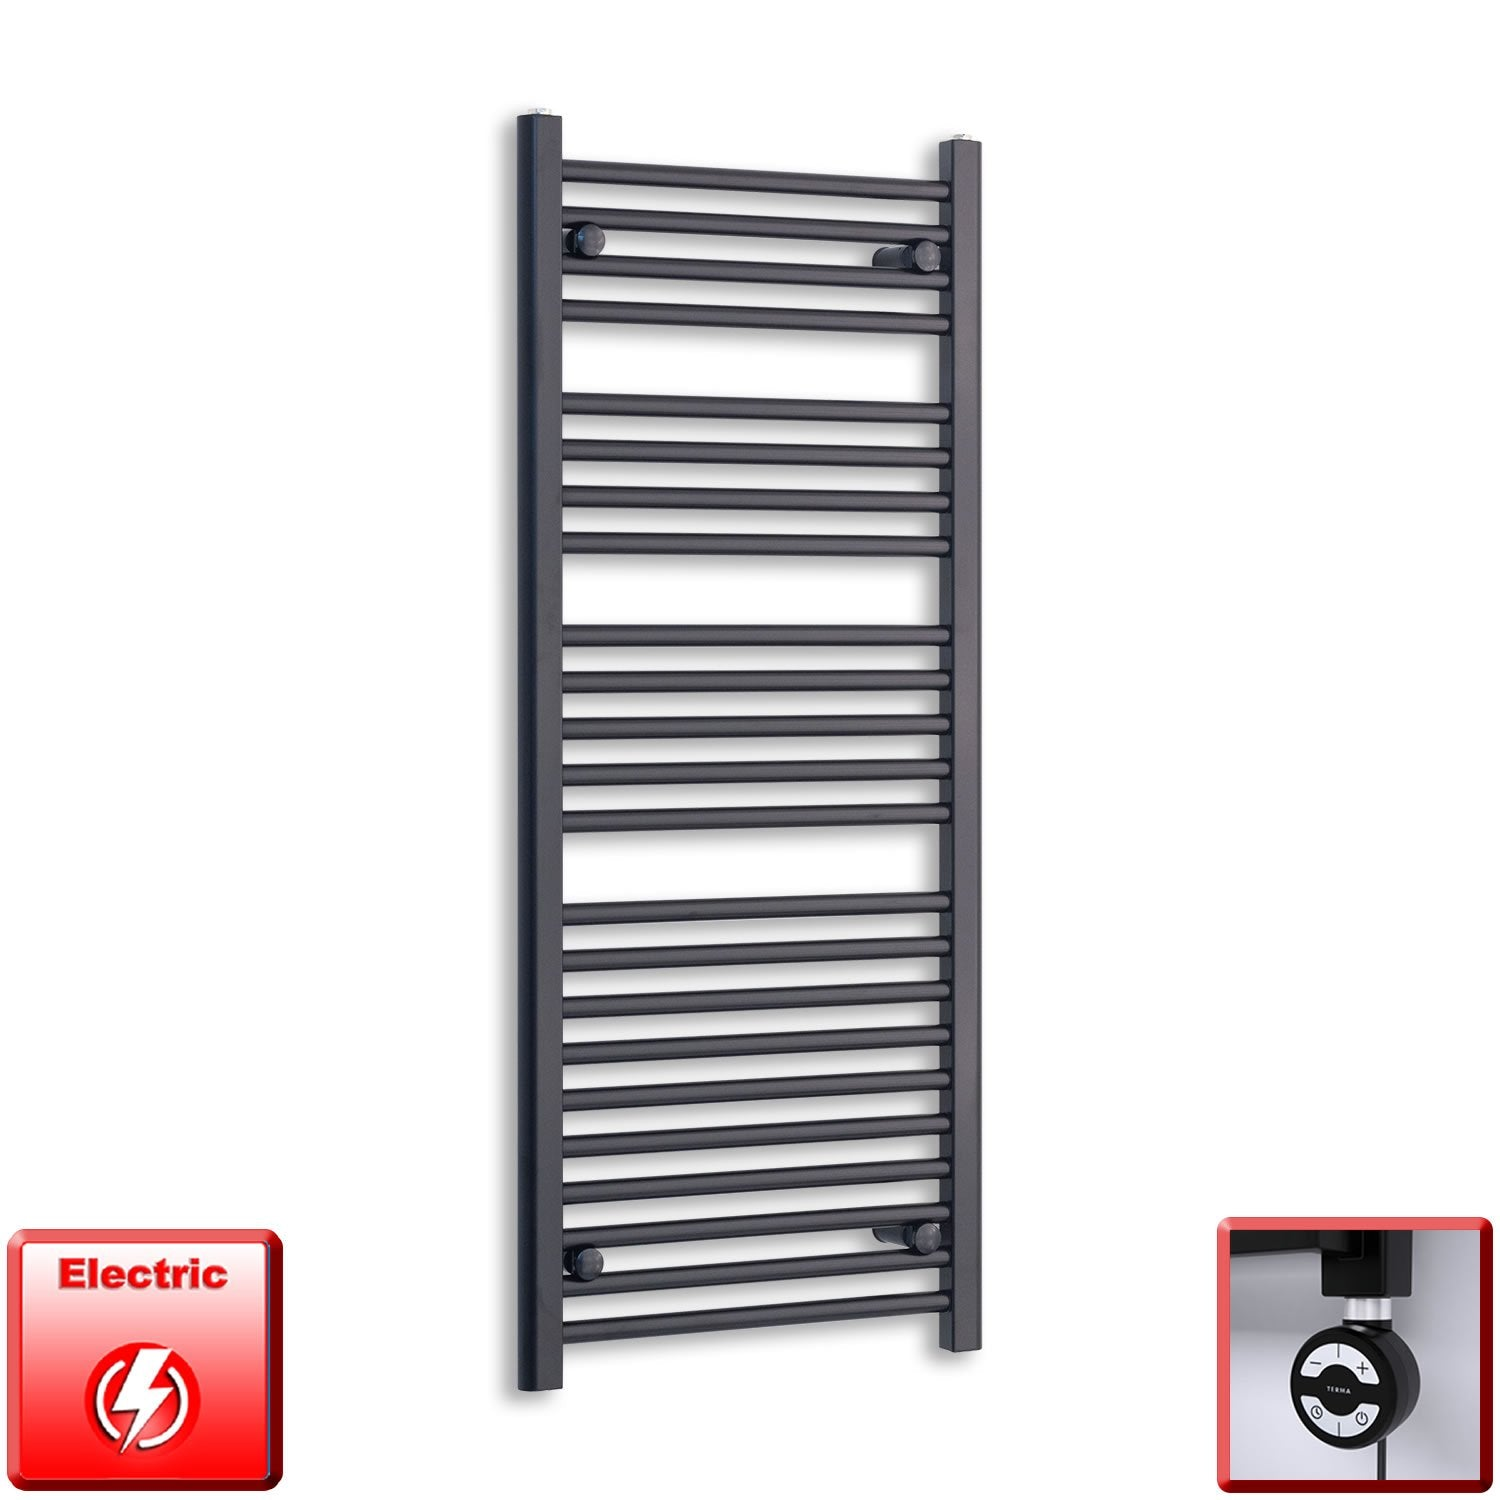 600mm Wide 1200mm High Flat Black Pre-Filled Electric Heated Towel Rail Radiator HTR,MOA Thermostatic Element